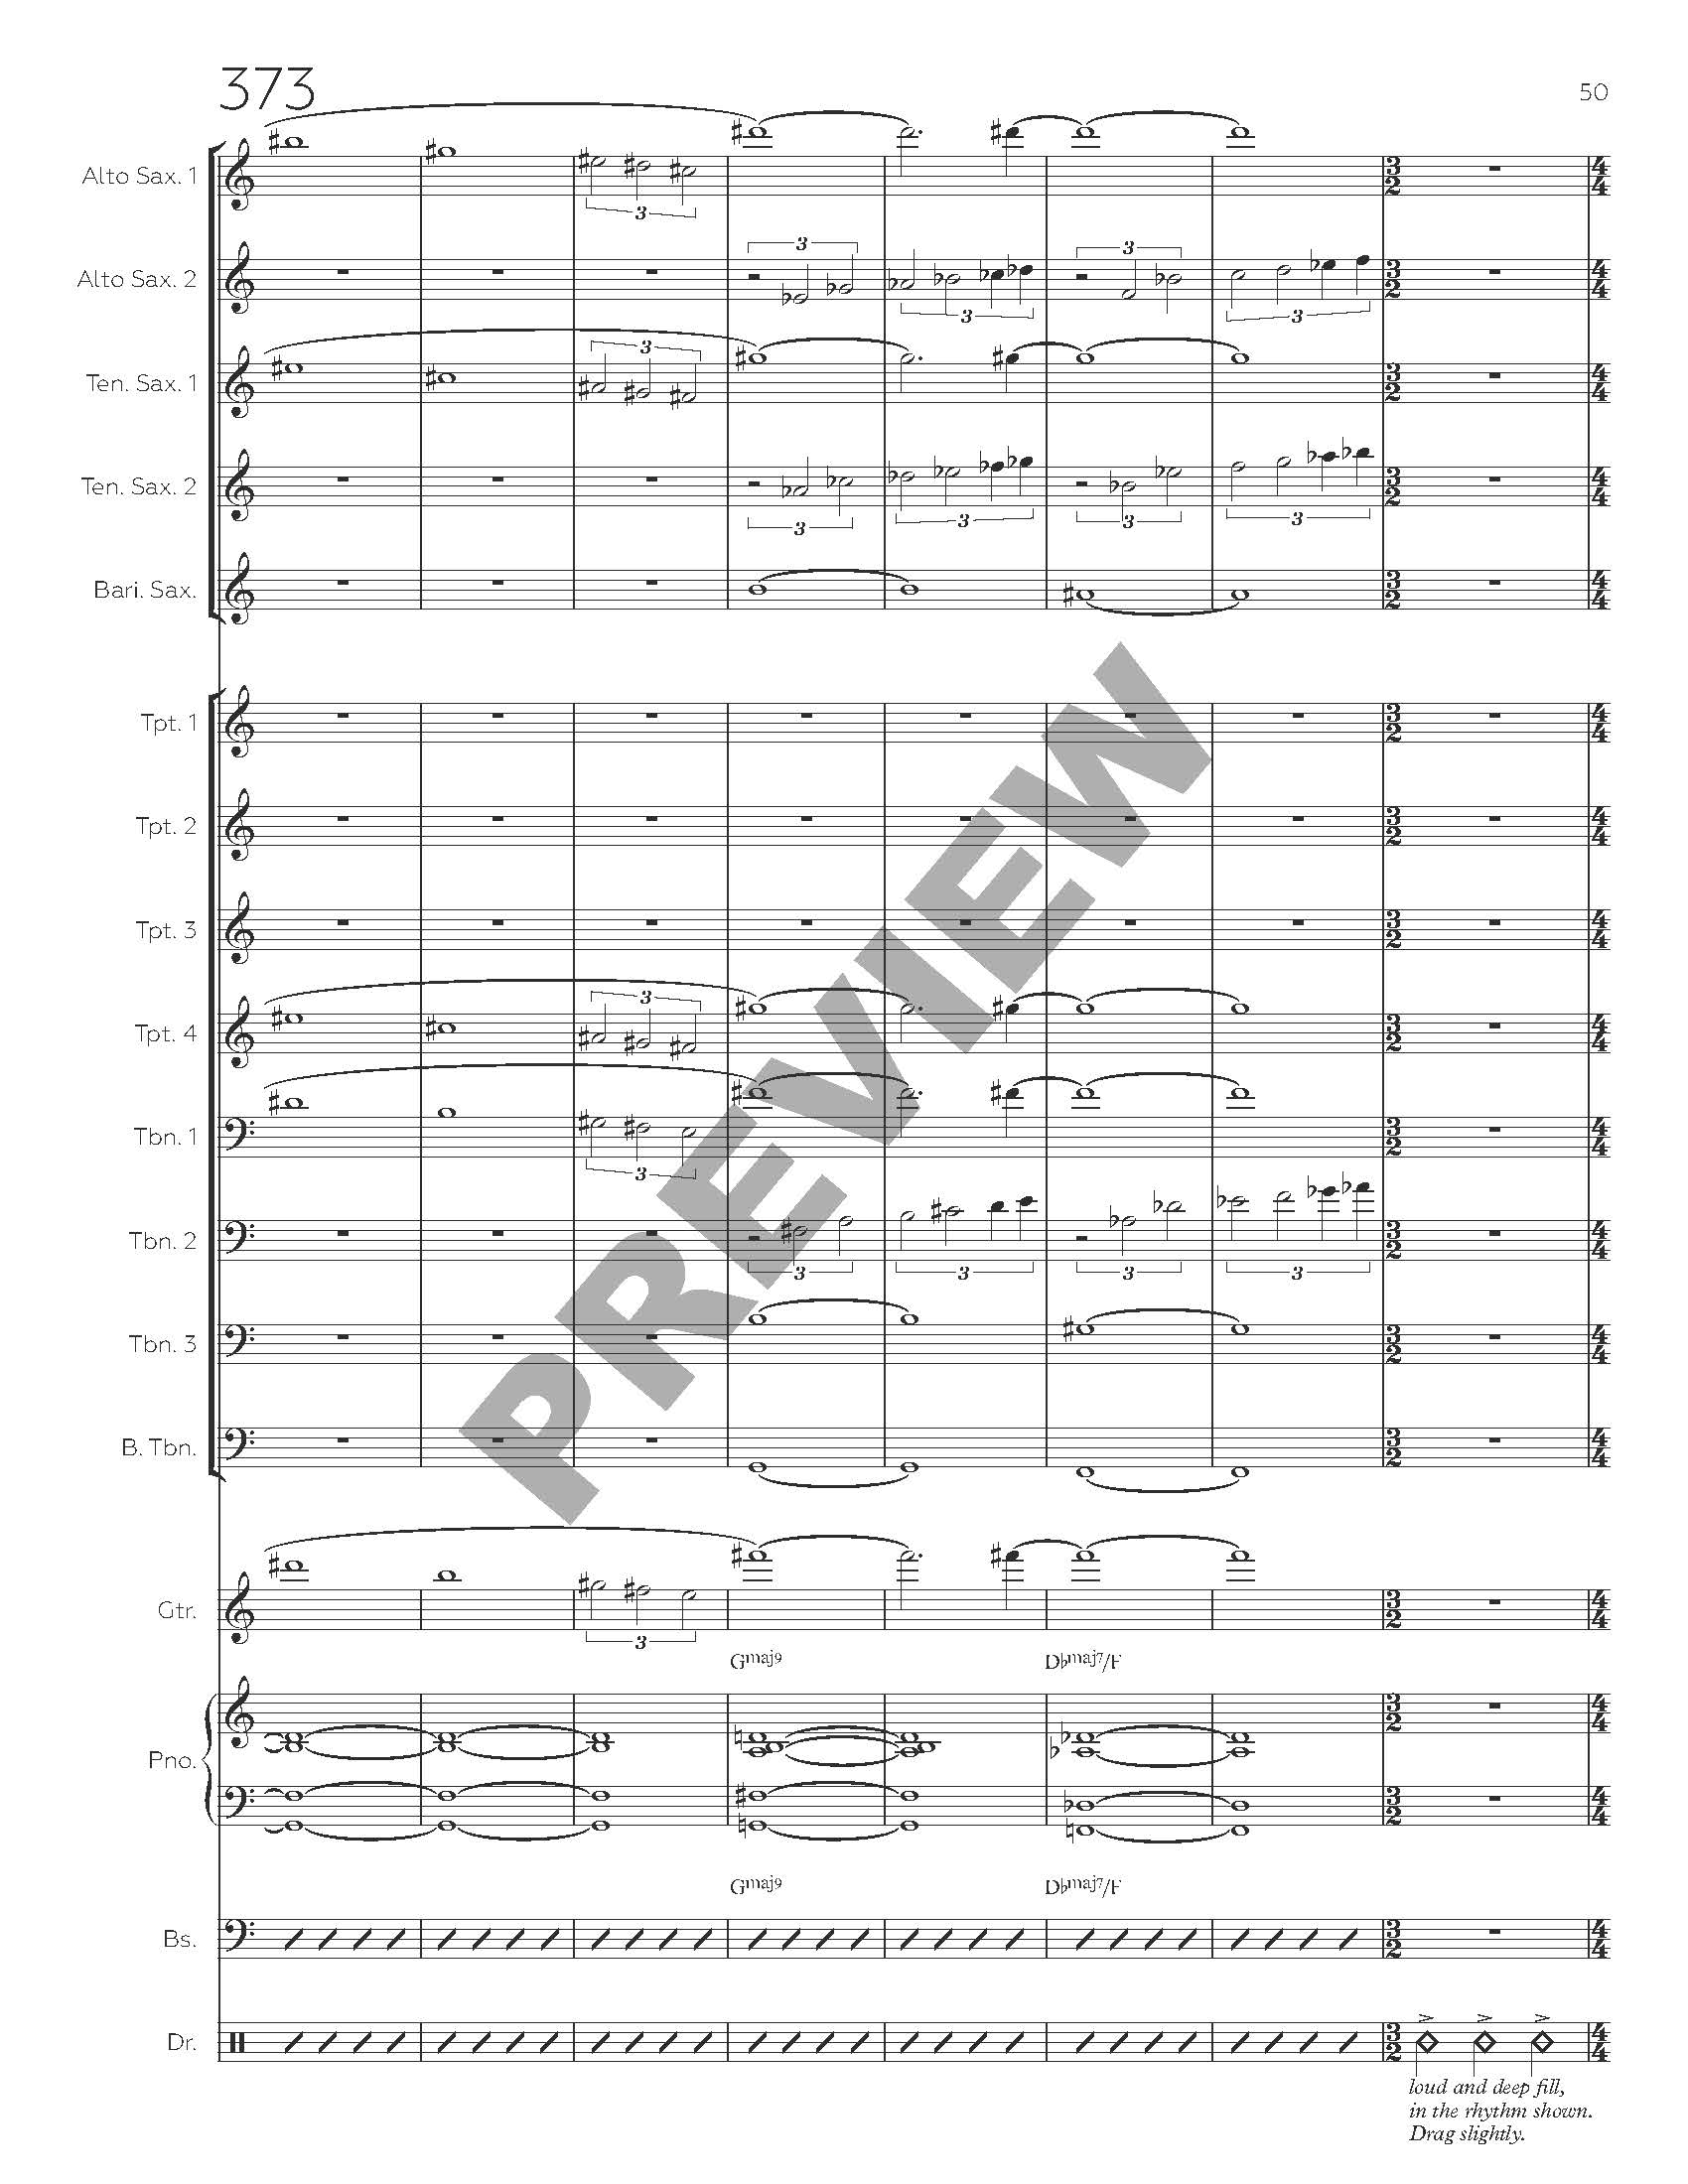 Something Fast - Full Score_Page_52.jpg